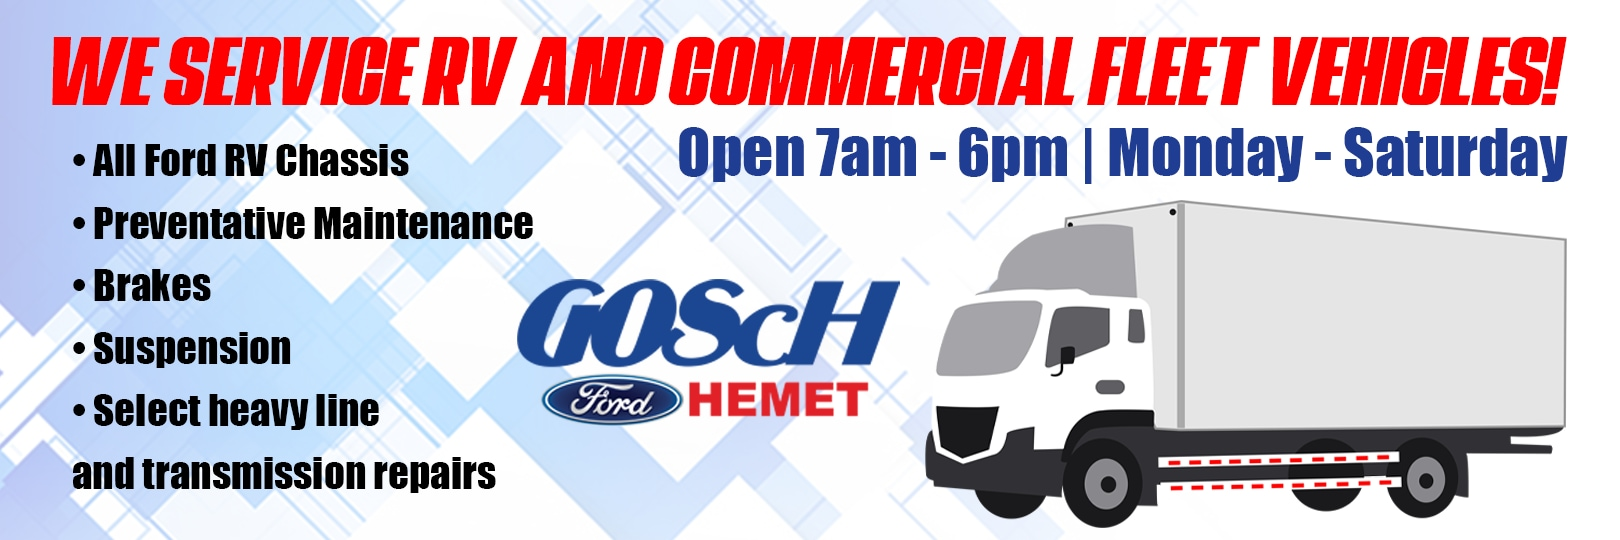 Gosch ford Hemet rv commercial fleet vehicle banner